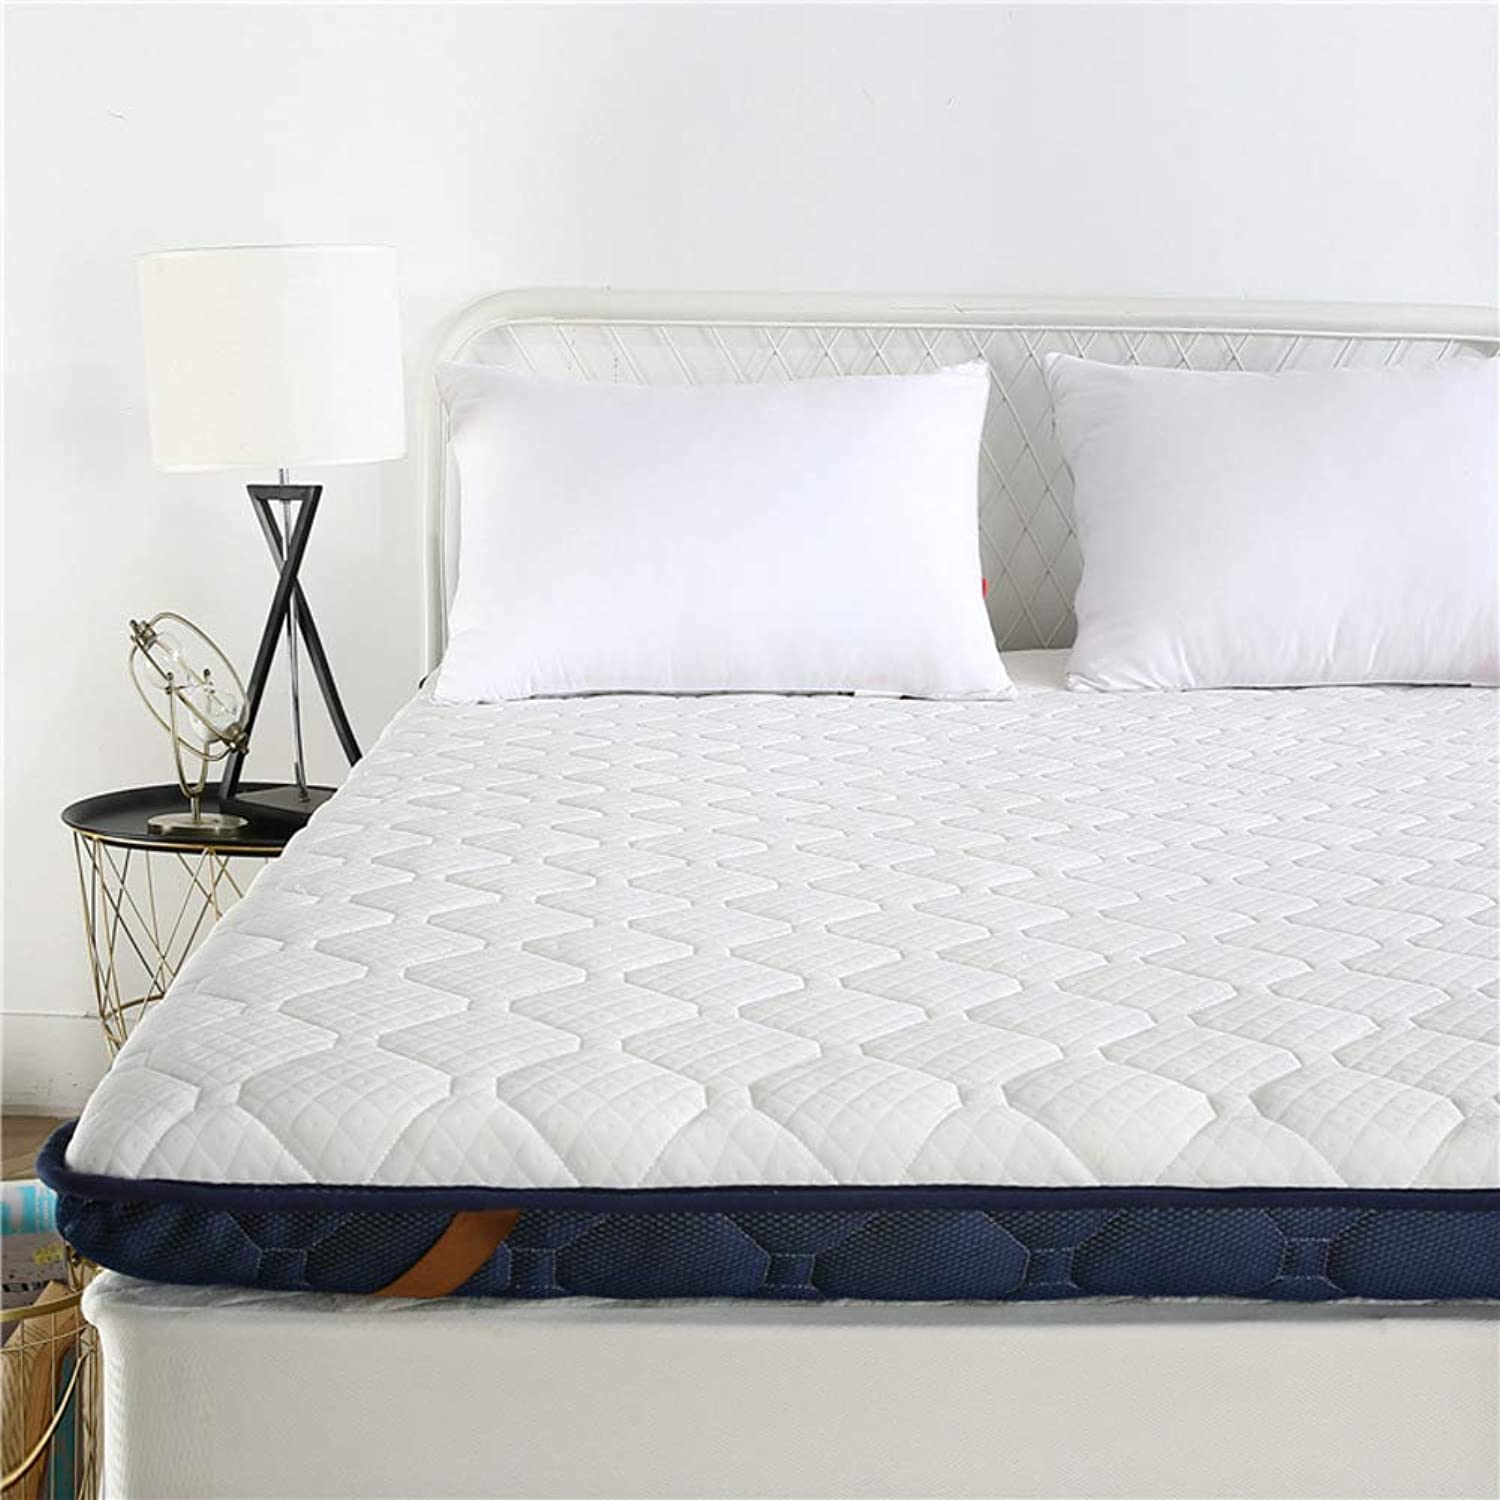 Reversible Hypoallergenic Fitted Mattress pad Cover, Premium Folding Mattress pad Topper Knitted Soft Three-Dimensional Tatami Floor Mattress Predector -B 90x200cm(35x79inch)